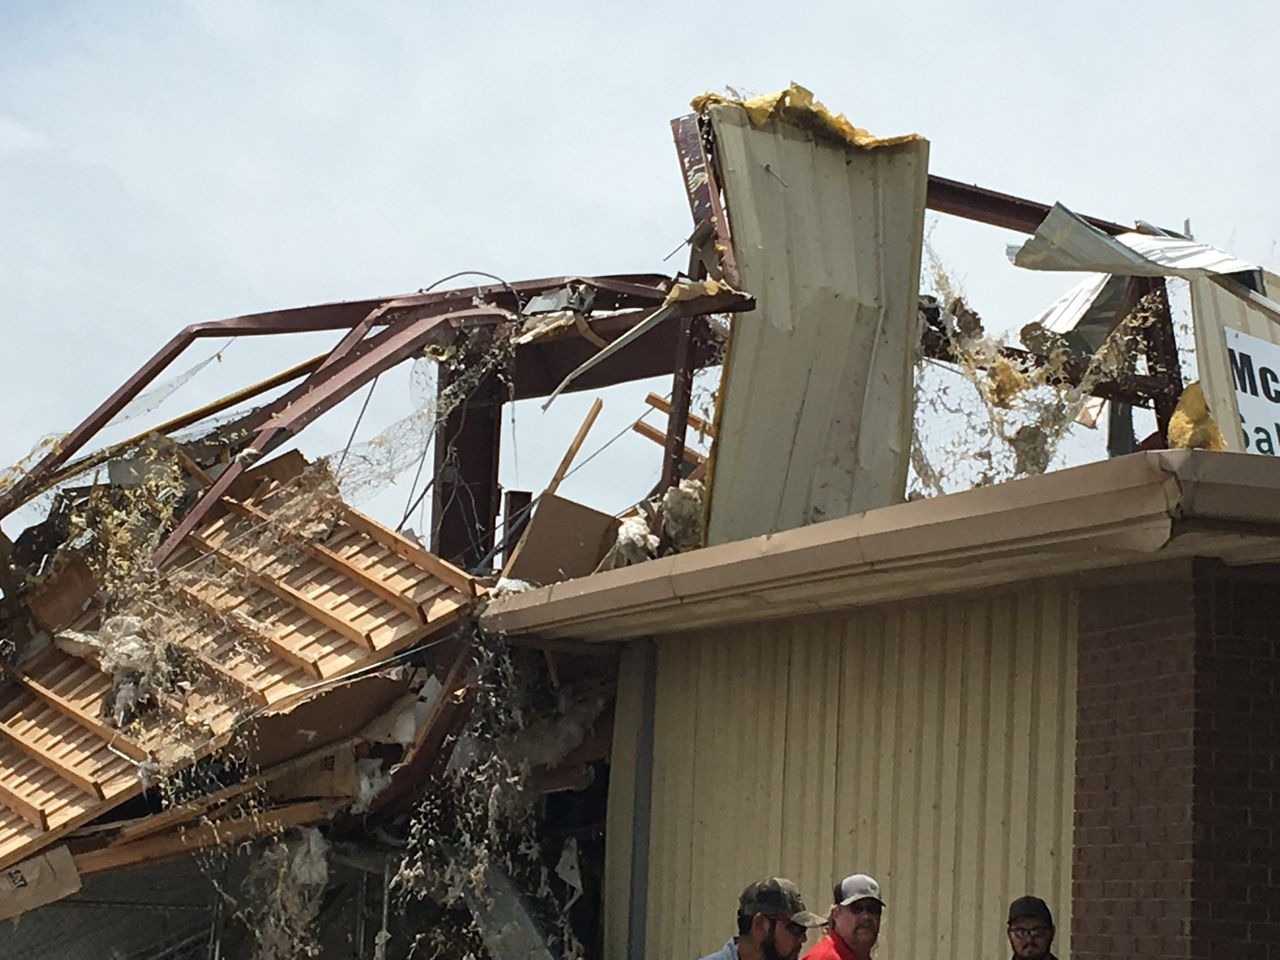 Up-close photo of the damaged roof.